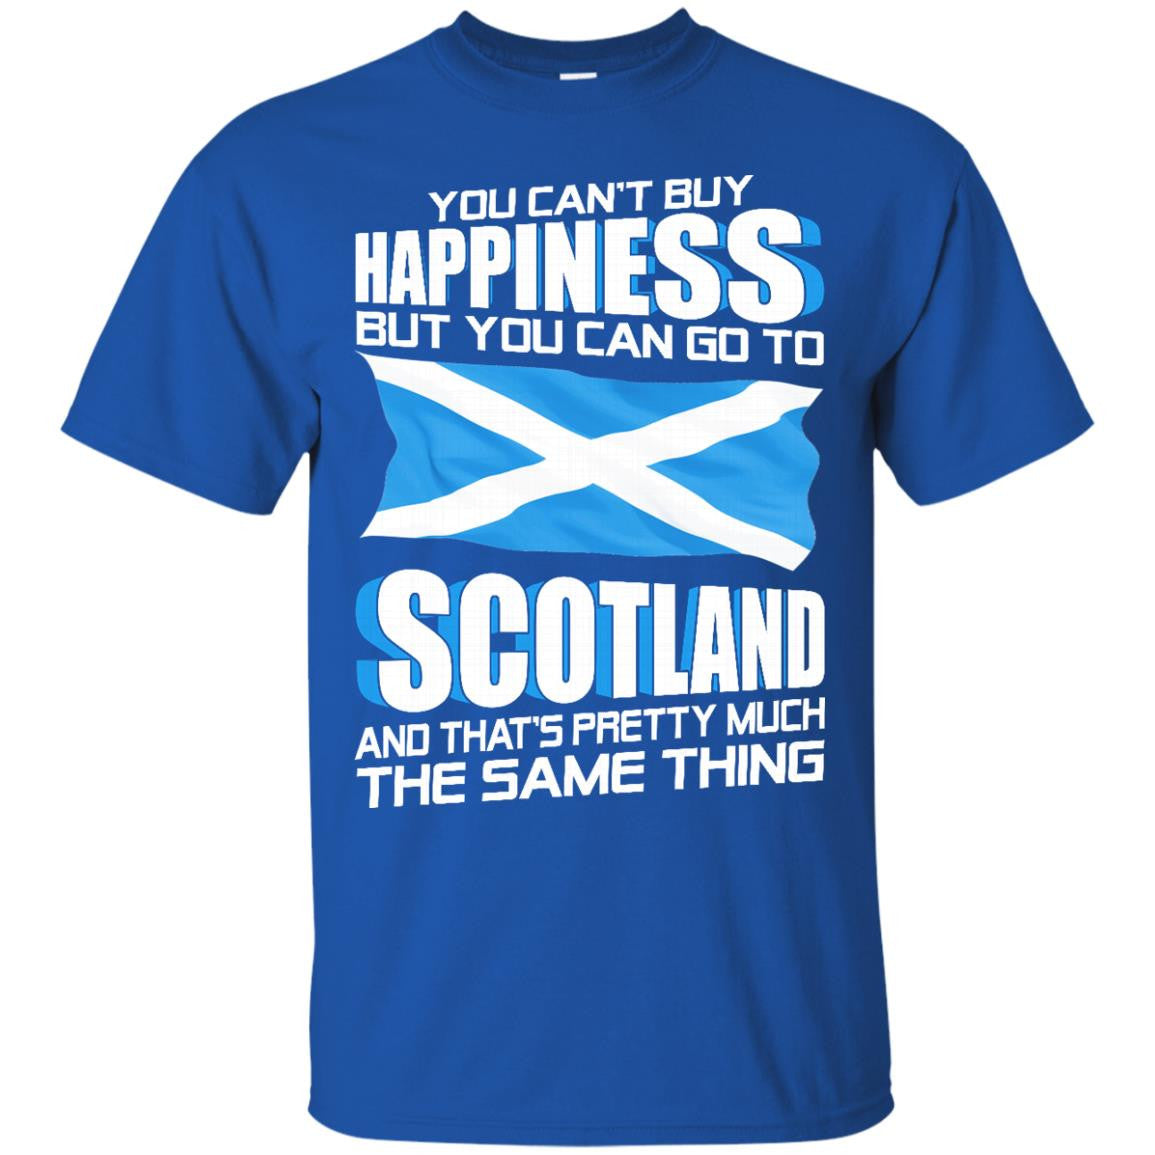 Scotland t shirts you can 39 t buy happiness but you can go for Where can i buy shirts